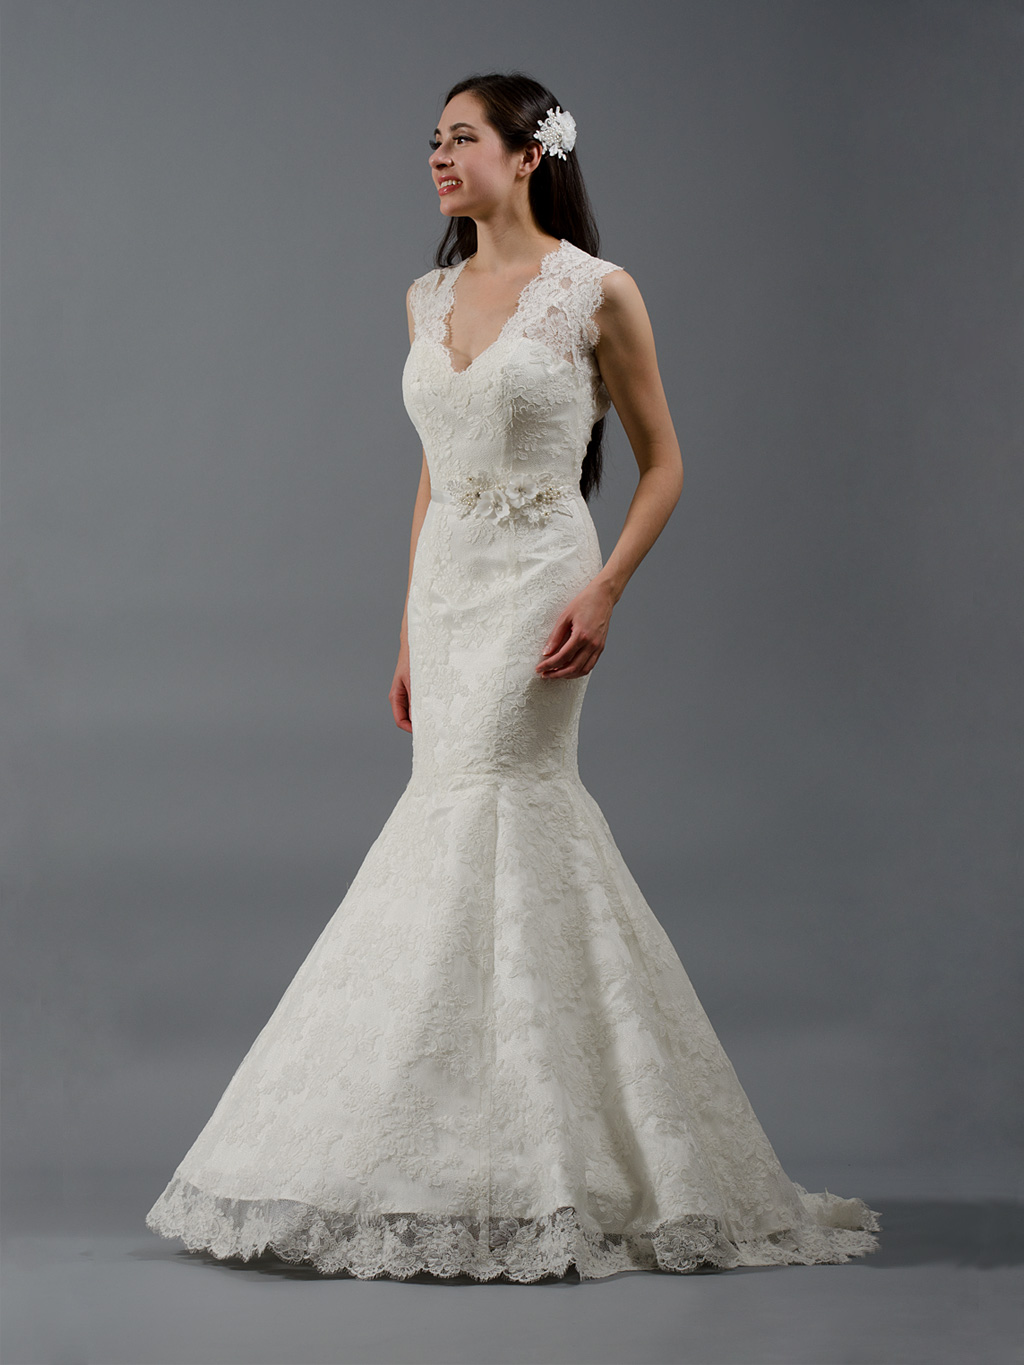 V Neck Sleeveless Floral Lace Patterns Mermaid Embrodiered Lace Wedding Dress with Flower